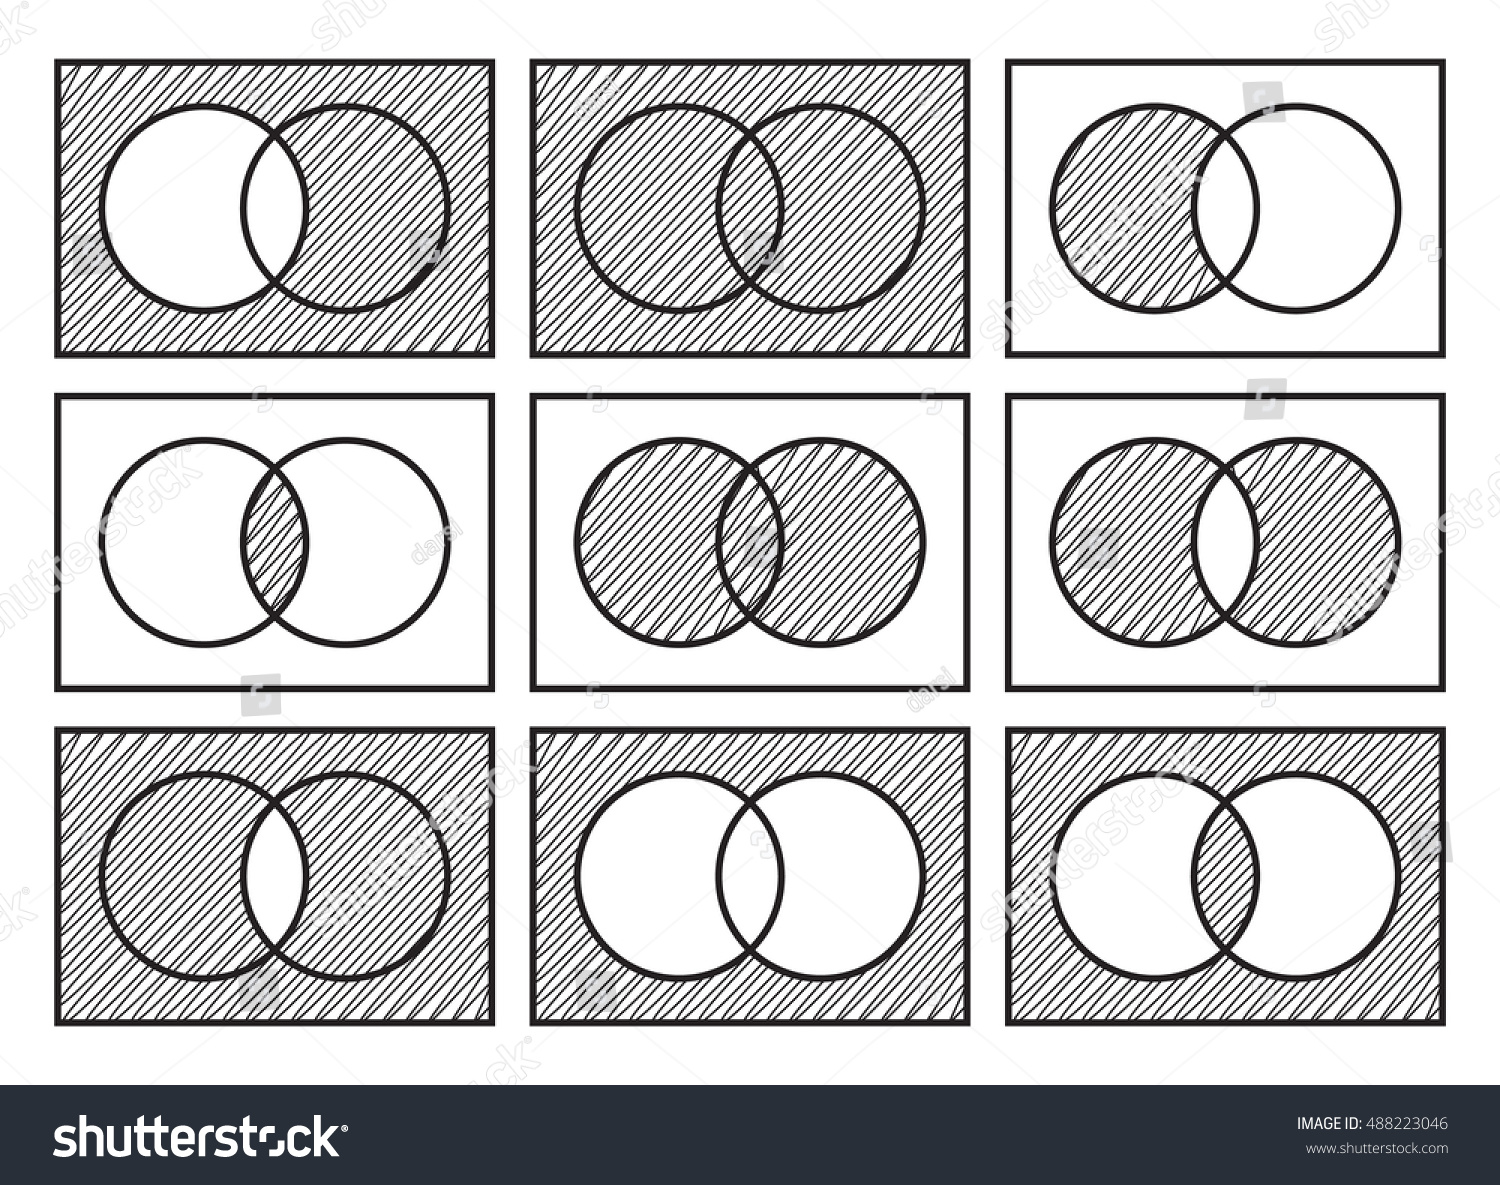 Sets theory basic operations venn diagrams stock vector 488223046 sets theory basic operations venn diagrams isolated on white background pooptronica